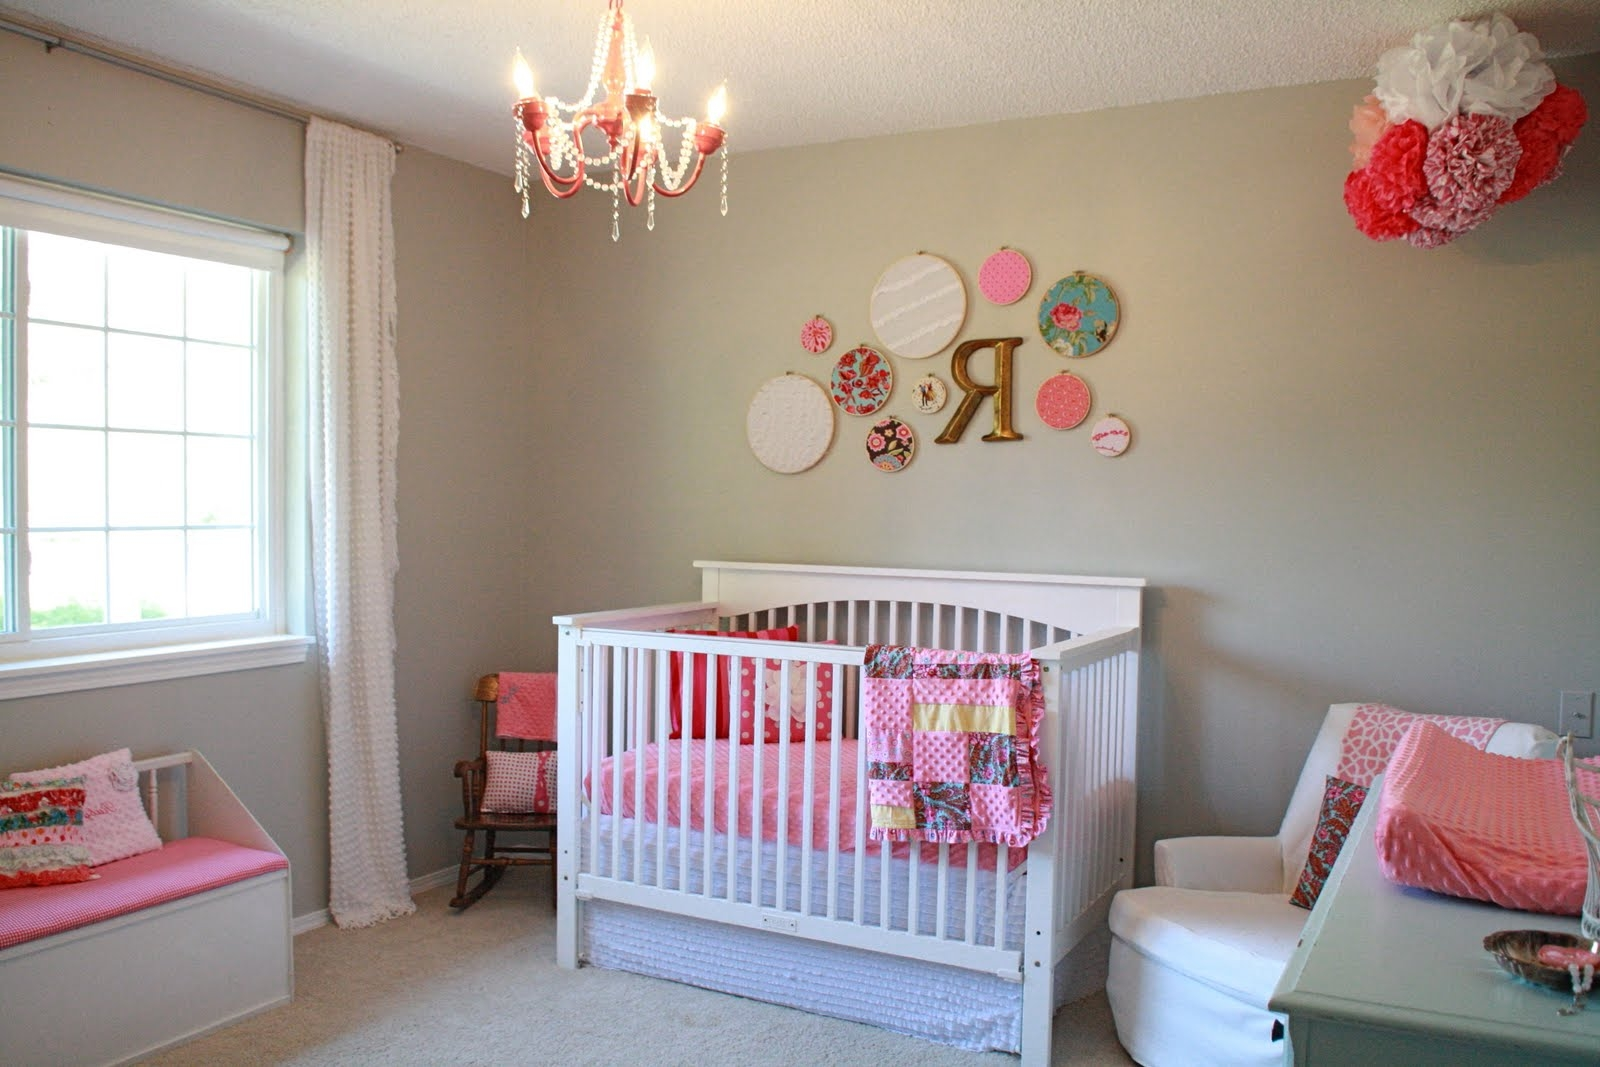 7 Inspiring Kid Room Color Options For Your Little Ones: Baby Girl Room Decor Ideas